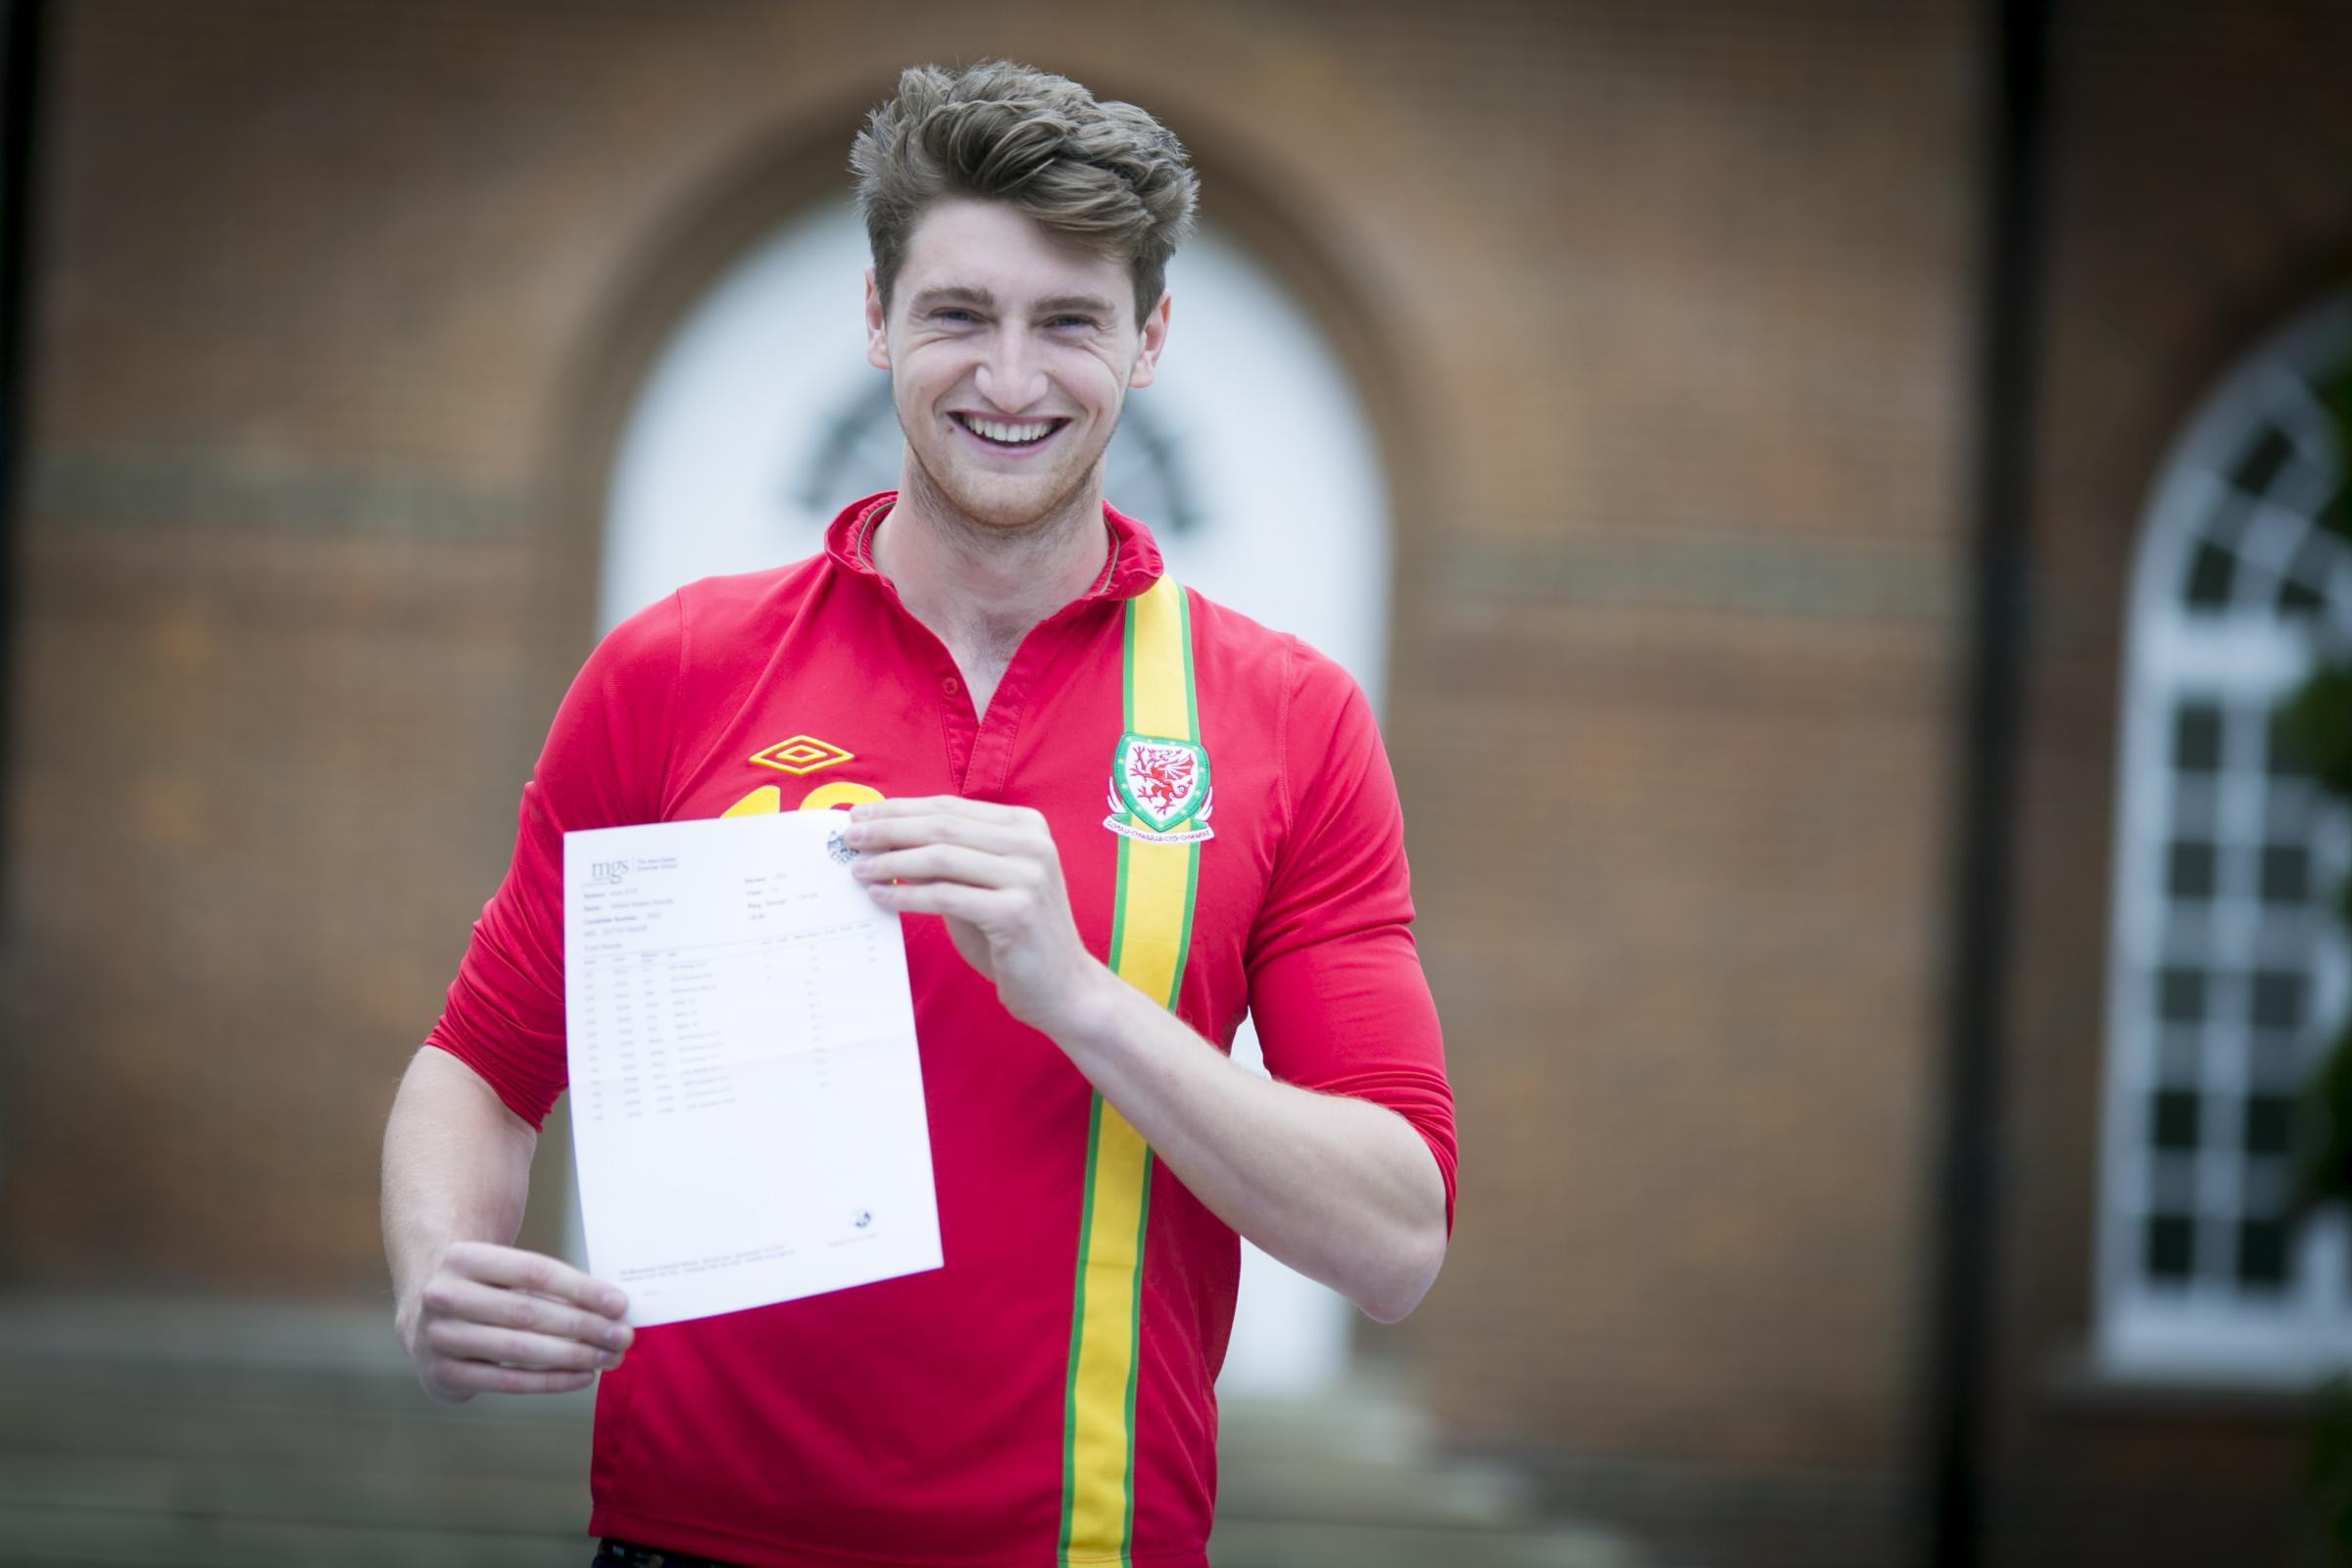 Will Abbots, who plays for Wales U19s and Bolton Wanderers, achieved three A*s in his exams